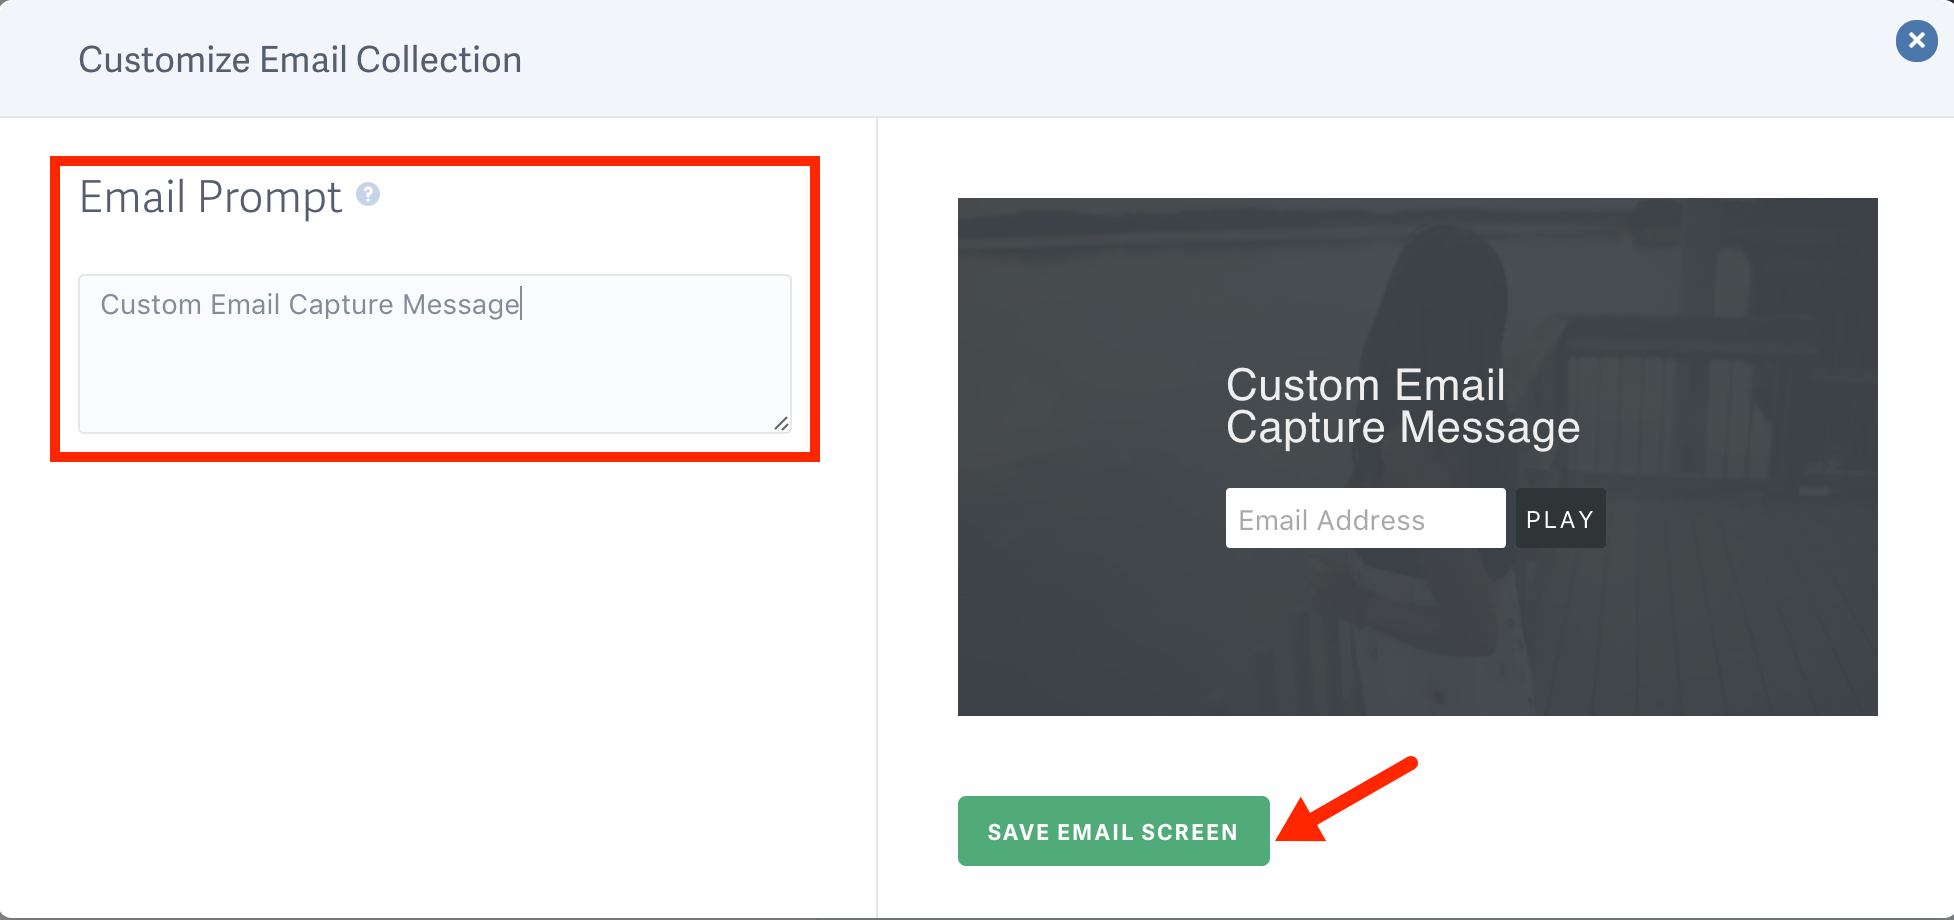 Customize Email Collection